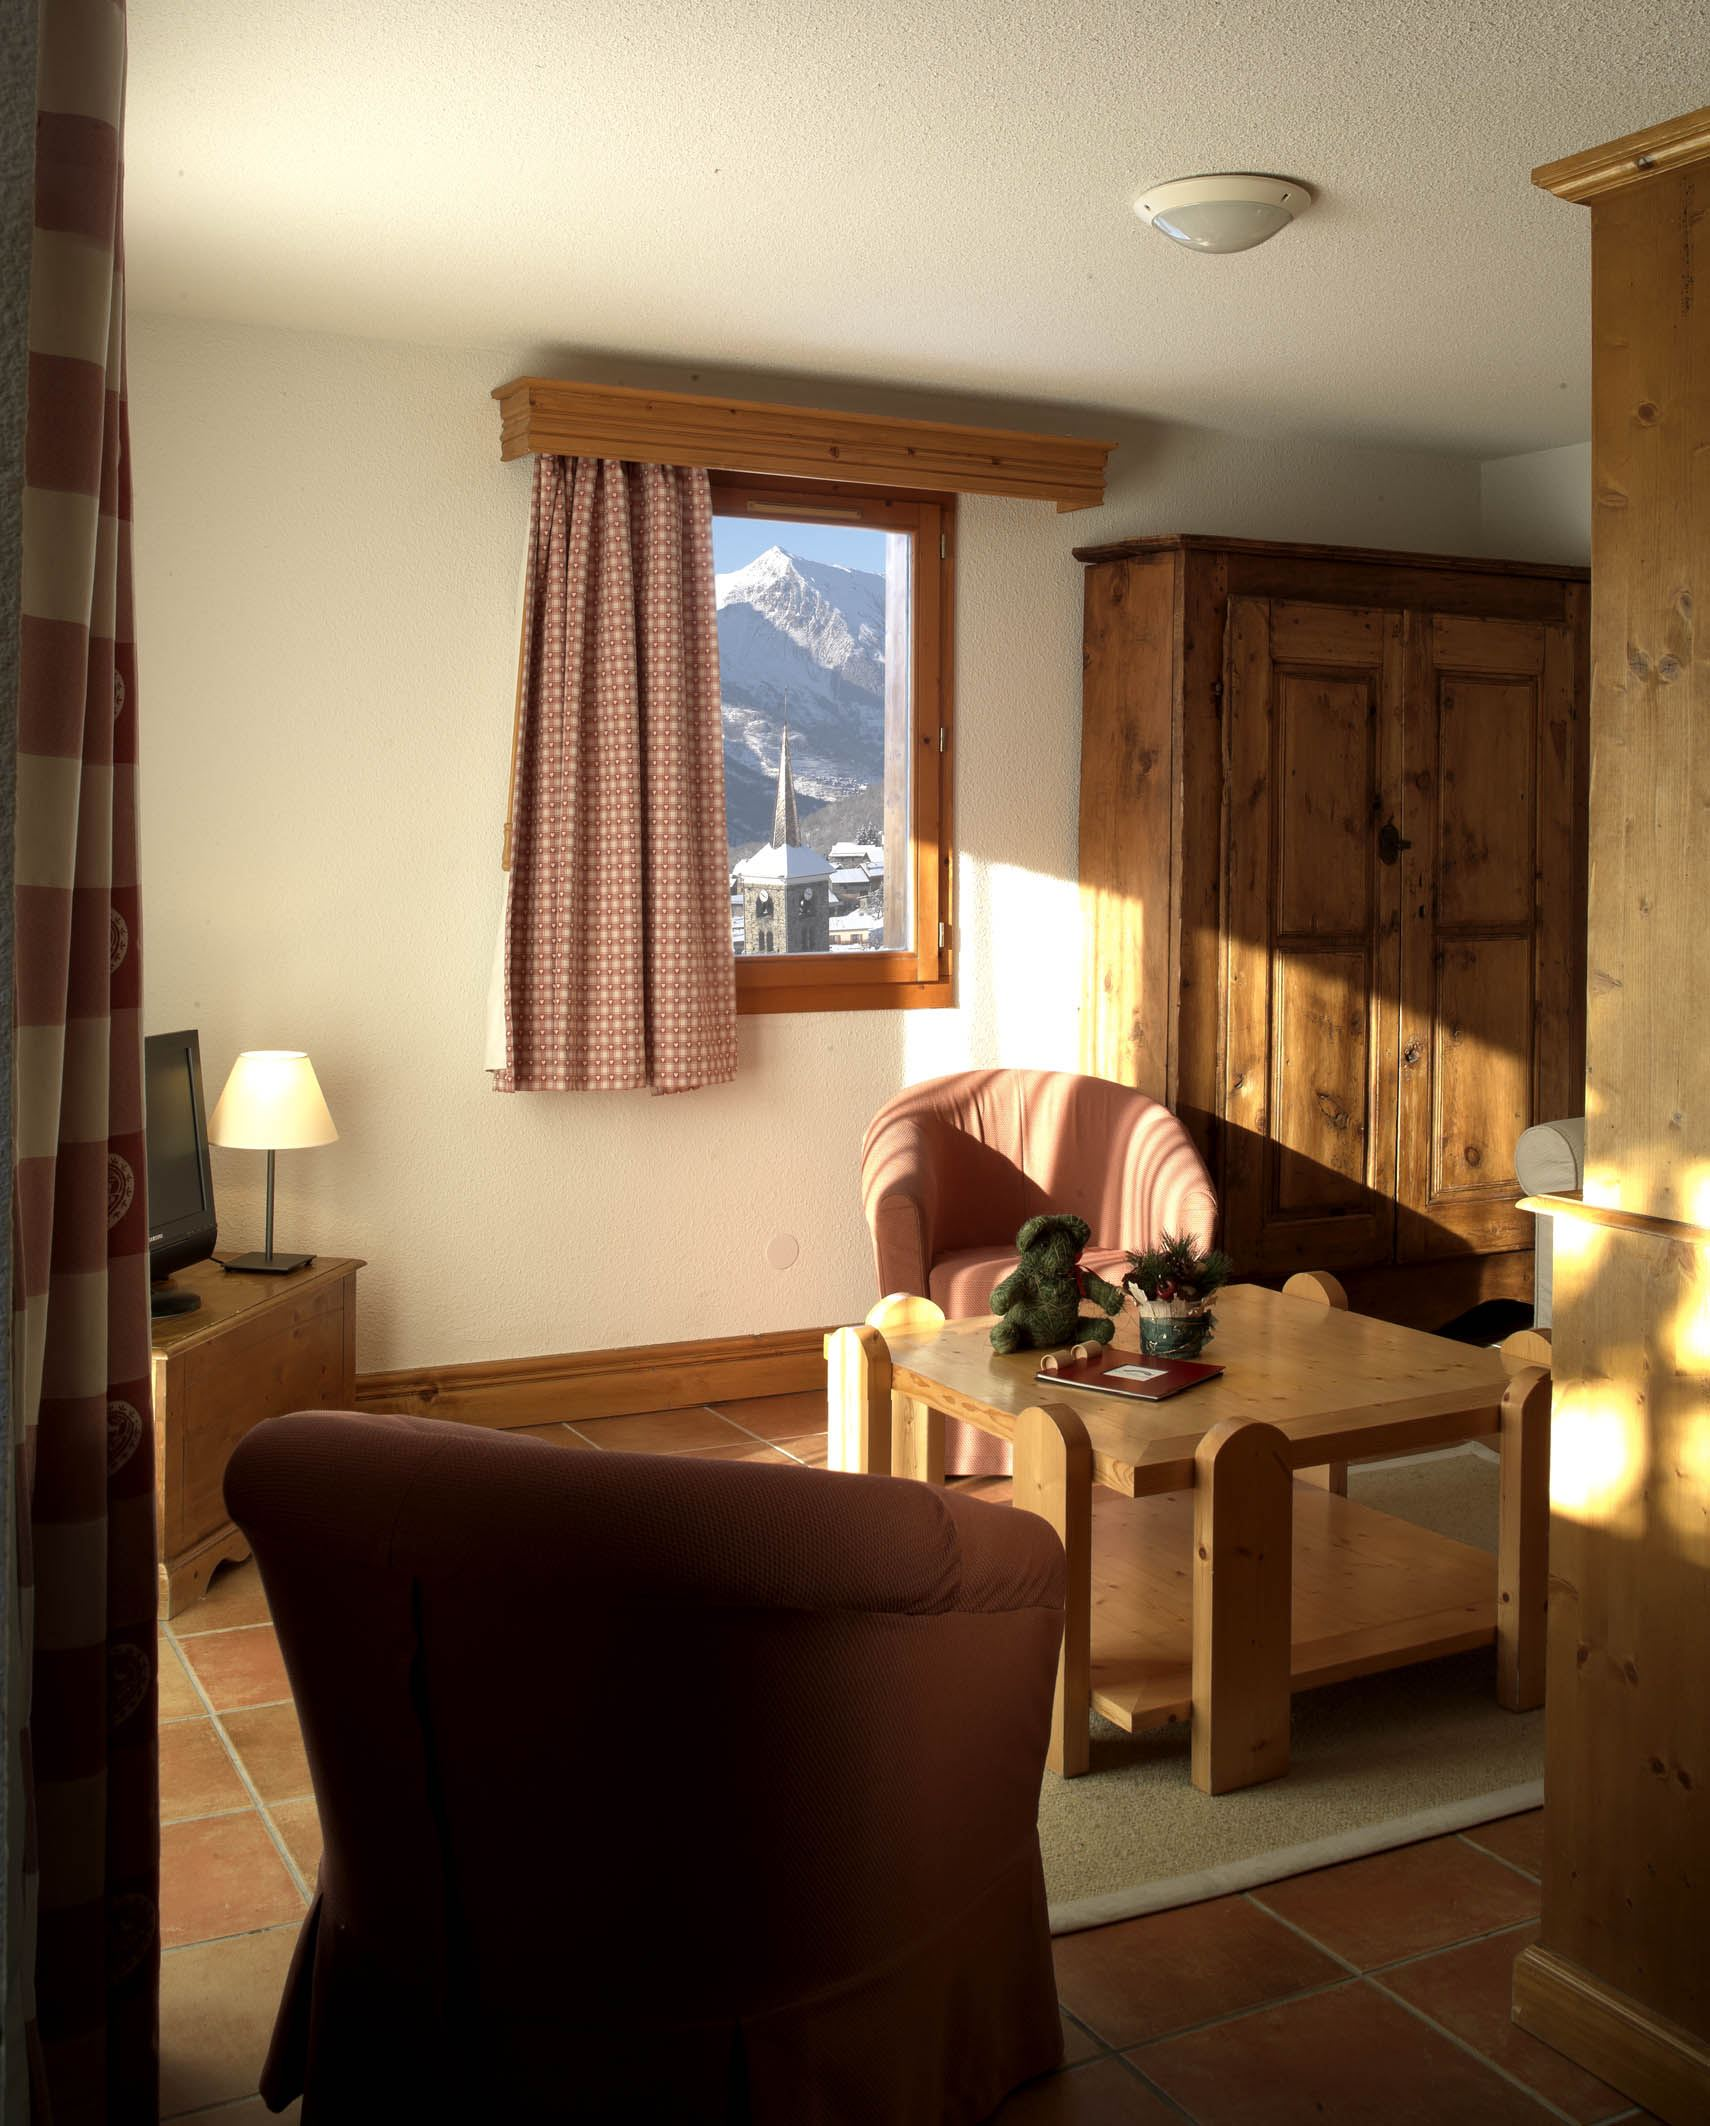 Residence ski-in ski-out / HOTEL SAINT MARTIN